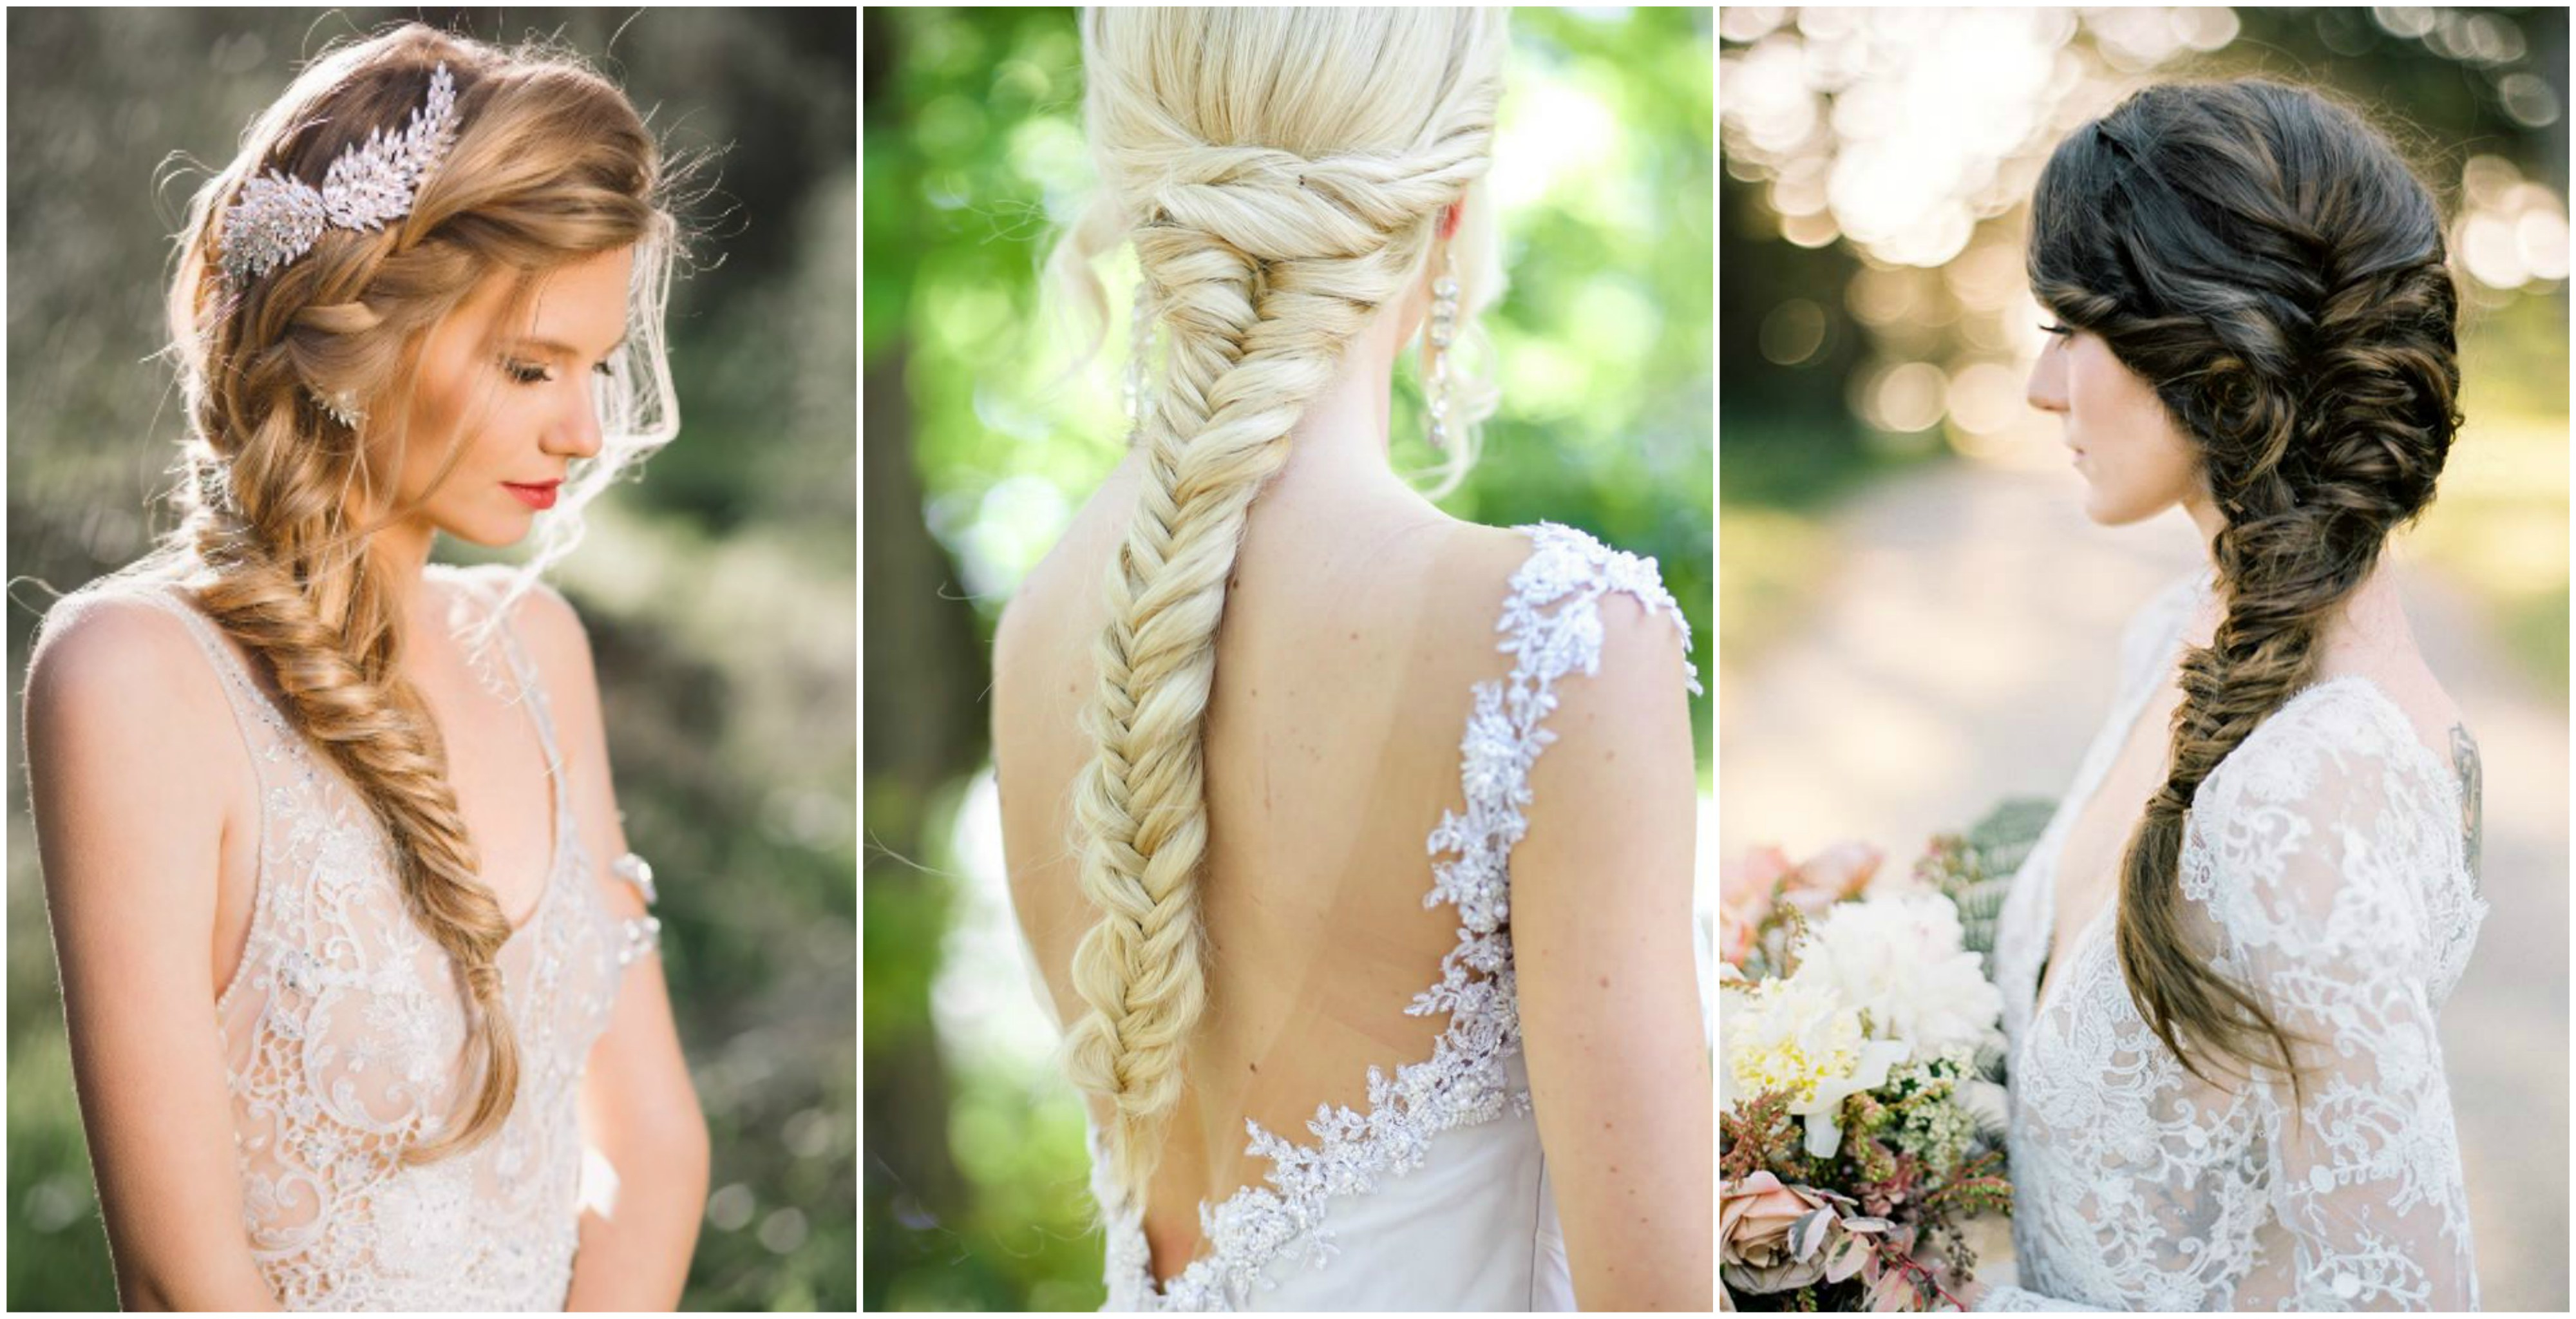 Unique Bridal Hairstyles For The Bride Who Wants To Look Different Intended For 2017 Teased Wedding Hairstyles With Embellishment (View 17 of 20)